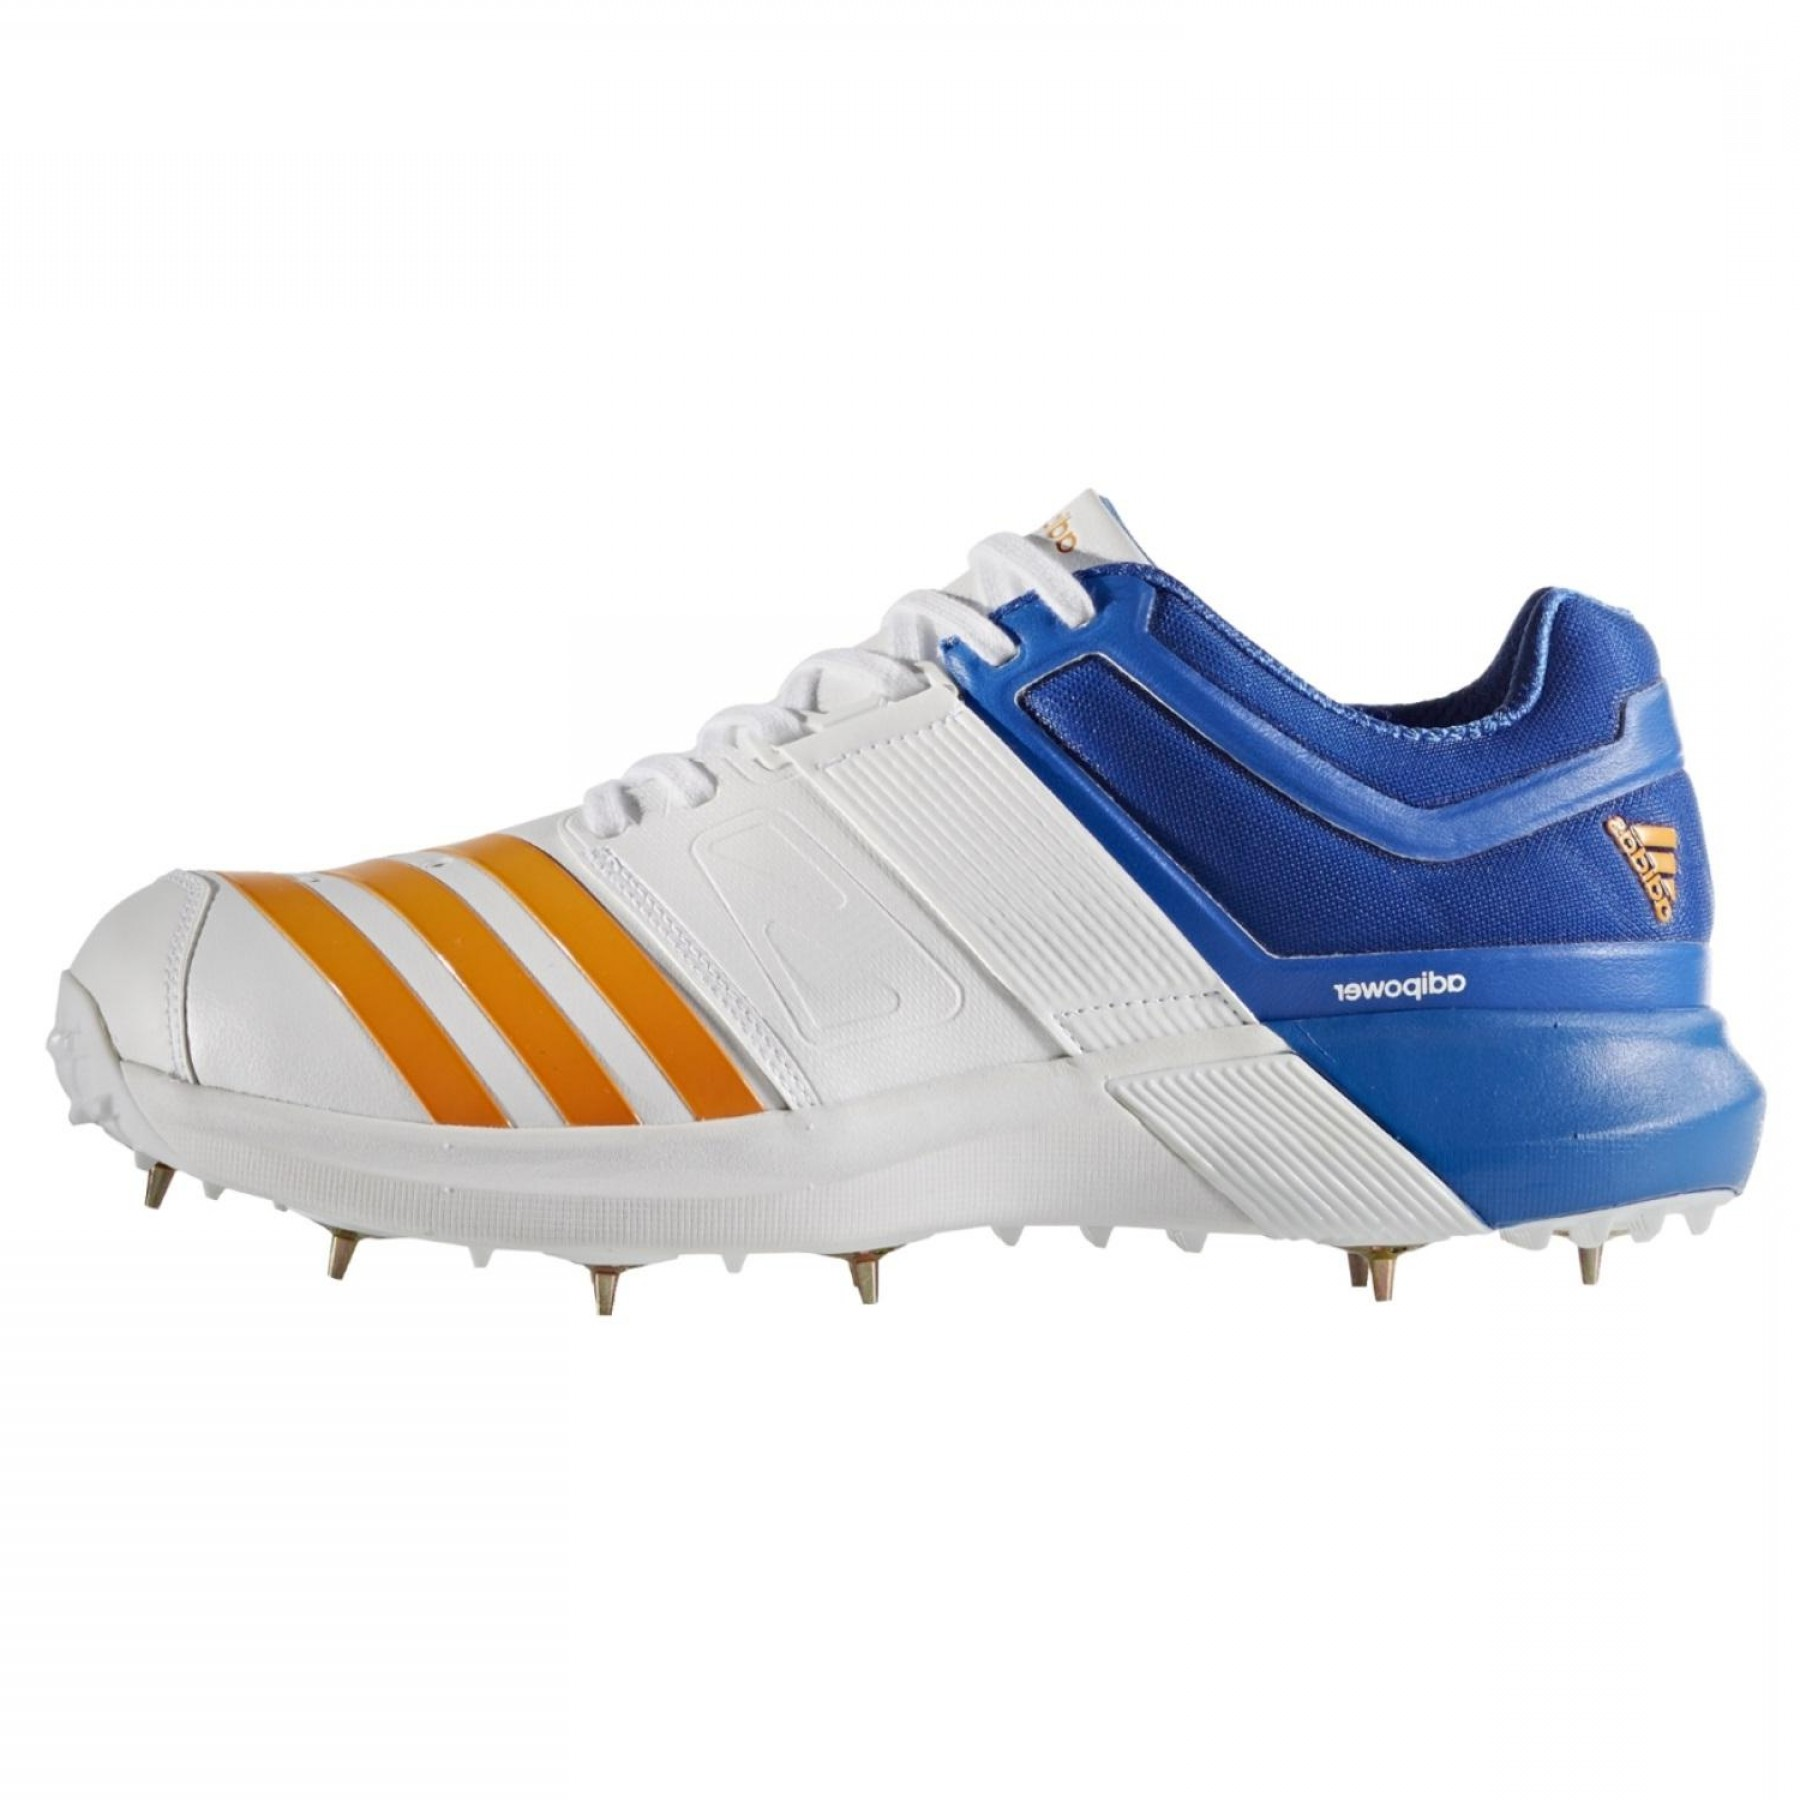 Adidas Brand Vector: Adidas Mens Adipower Vector Cricket Boots